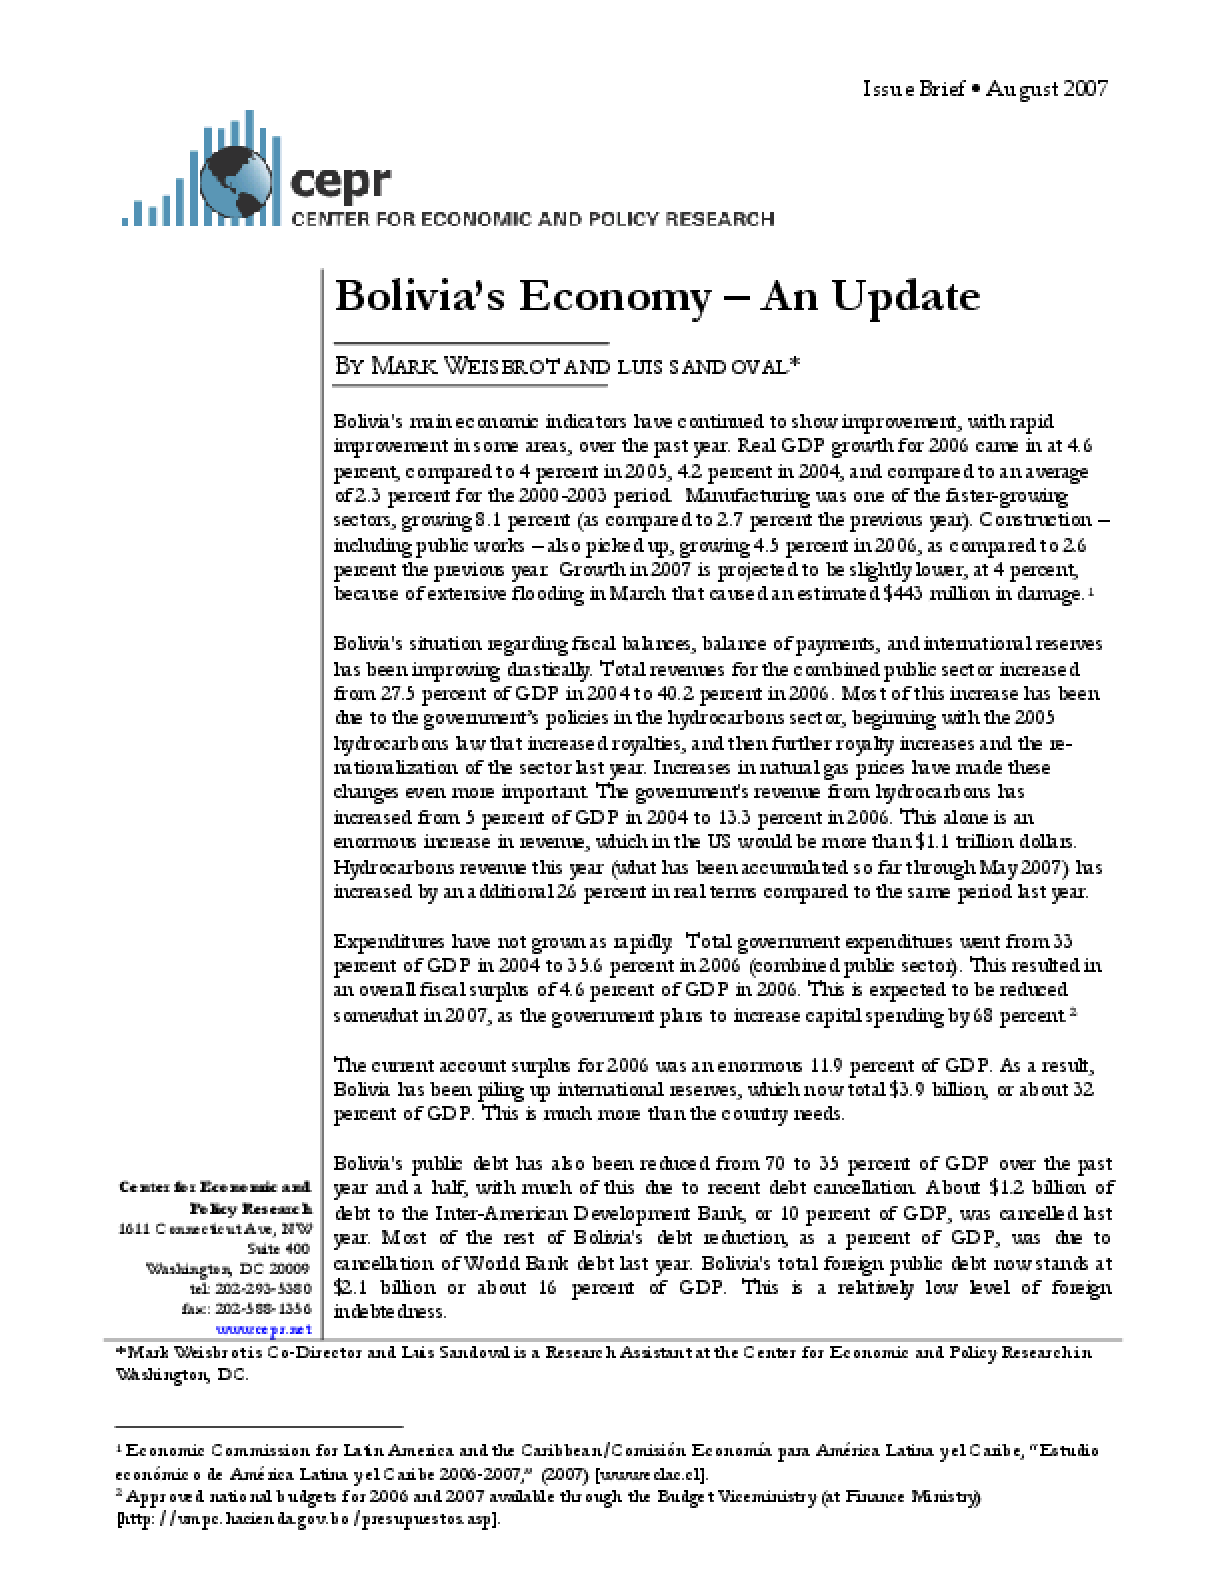 Bolivia's Economy - An Update